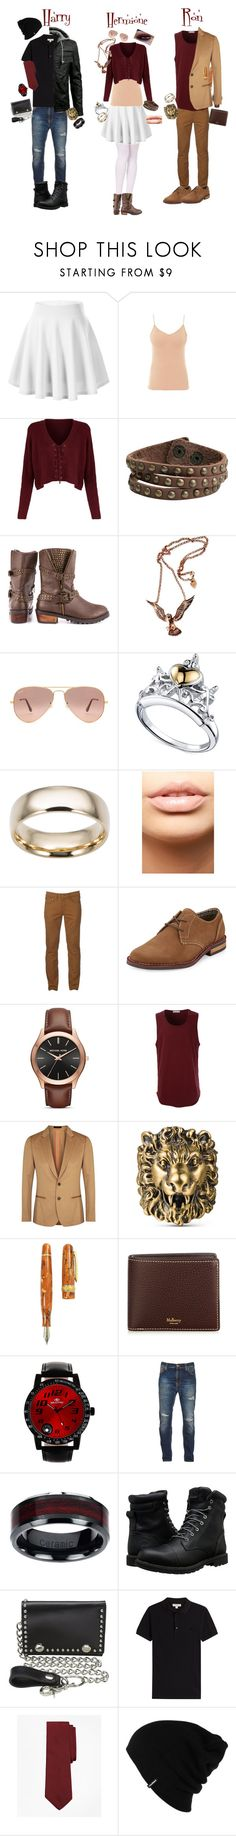 """Untitled #44"" by slytherinravenclaw on Polyvore featuring Hanro, Zad, Penny Loves Kenny, Hjälte Jewellery, Ray-Ban, Disney, Fremada, MDMflow, Urban Pipeline and Original Penguin"